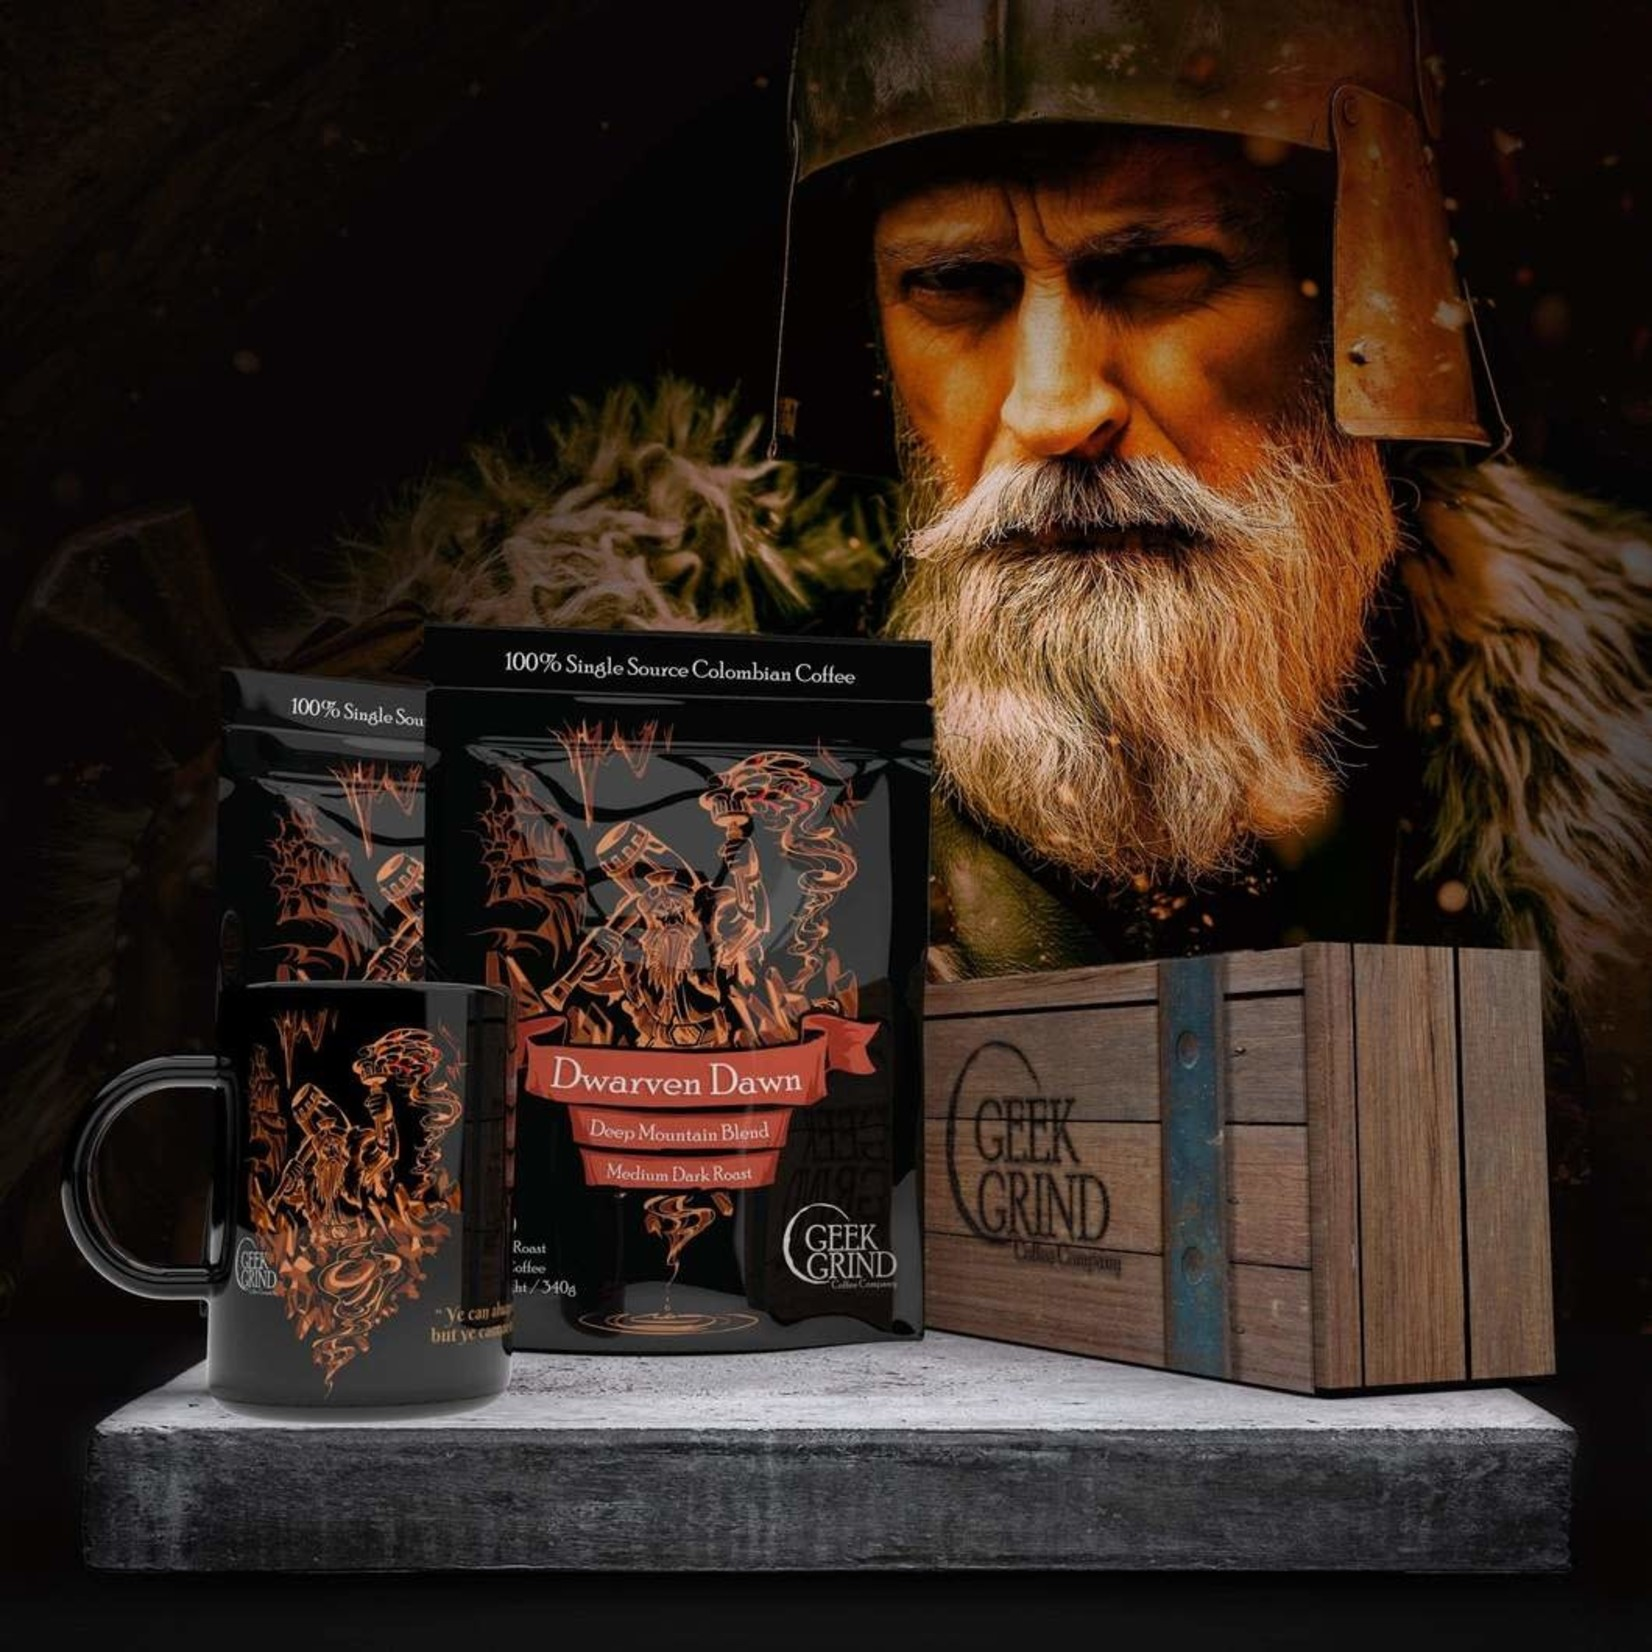 Geek Grind Dwarven Dawn & Cup Coffee Gift Crate